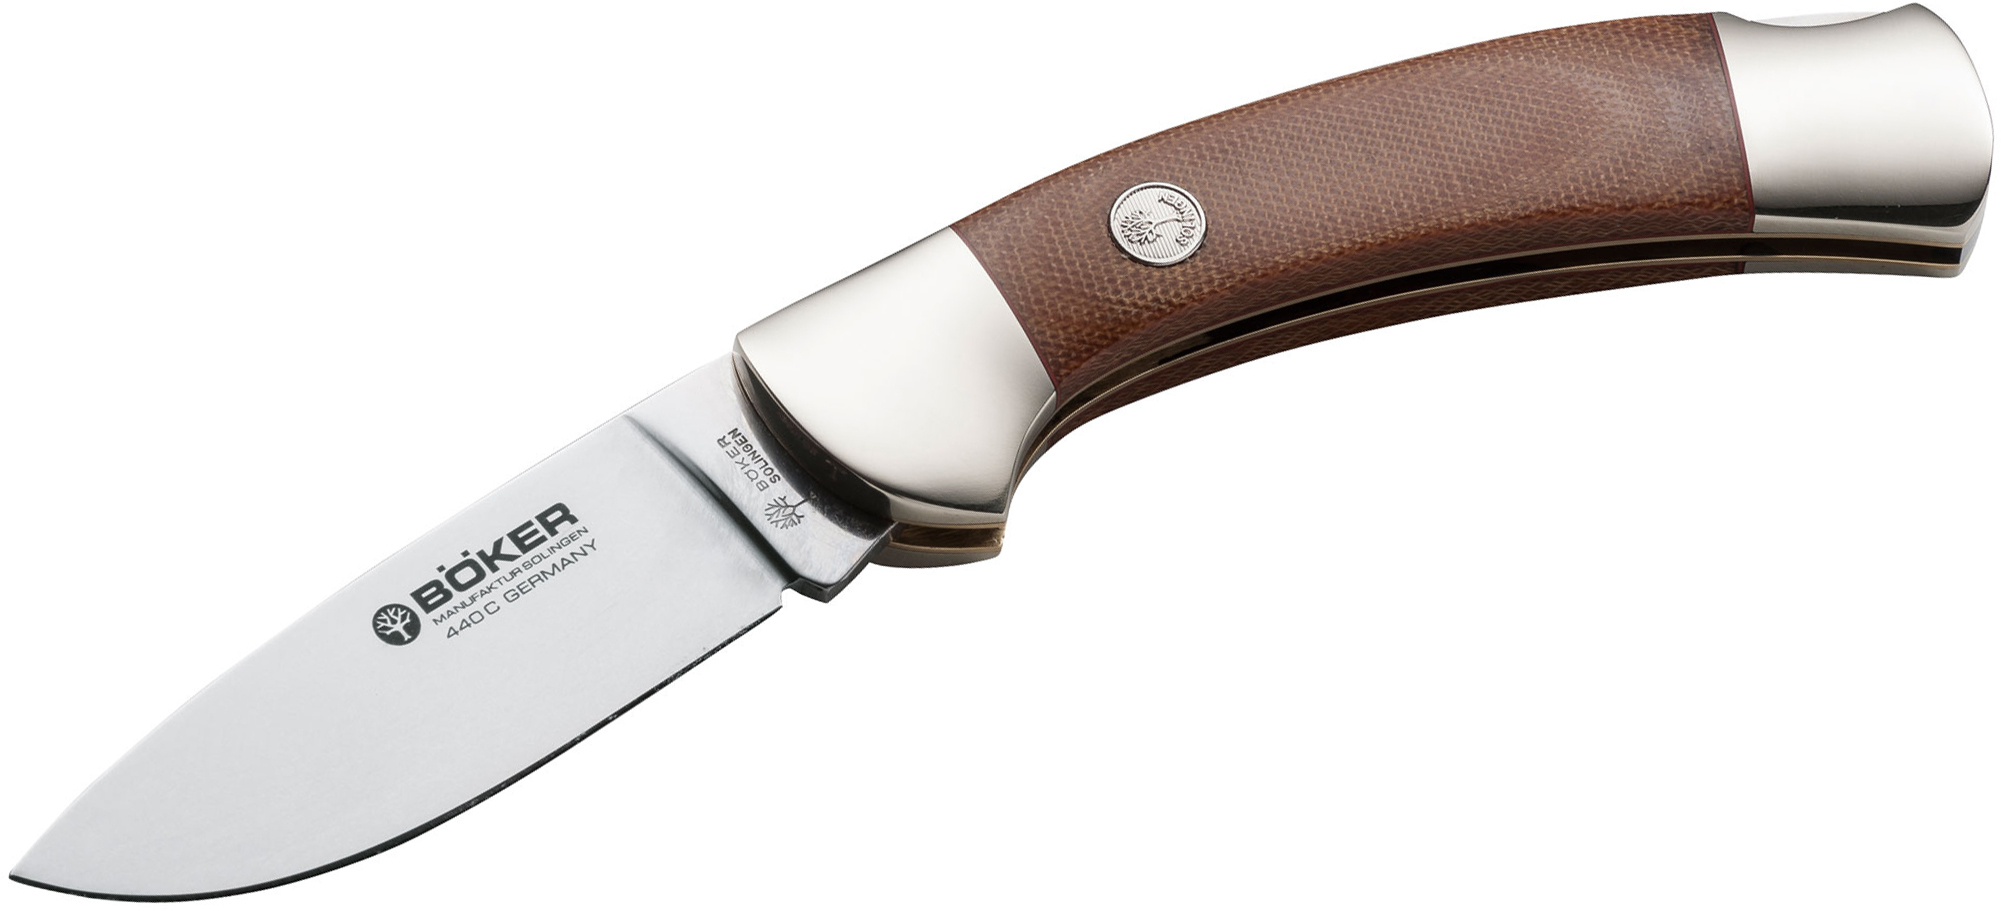 Buy Boker 3000 Lightweight at KnifeCenter